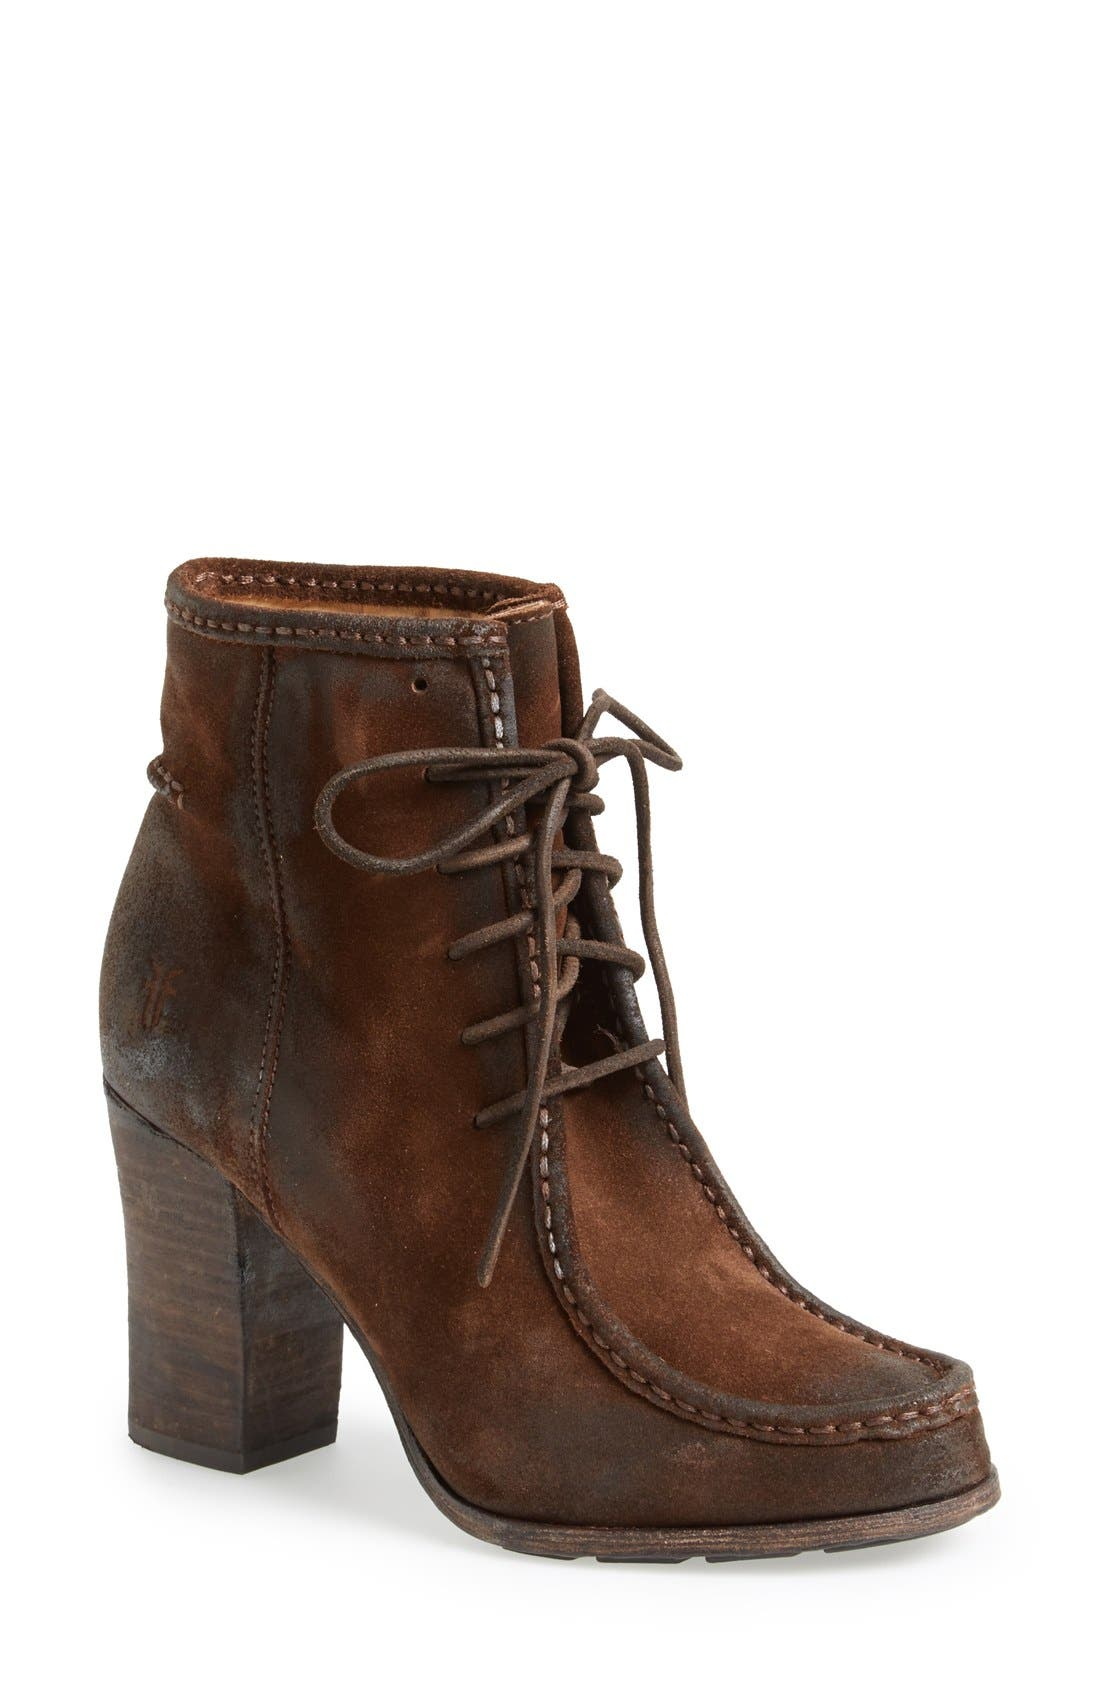 Main Image - Frye 'Parker' Suede Moc Toe Ankle Boot (Women)